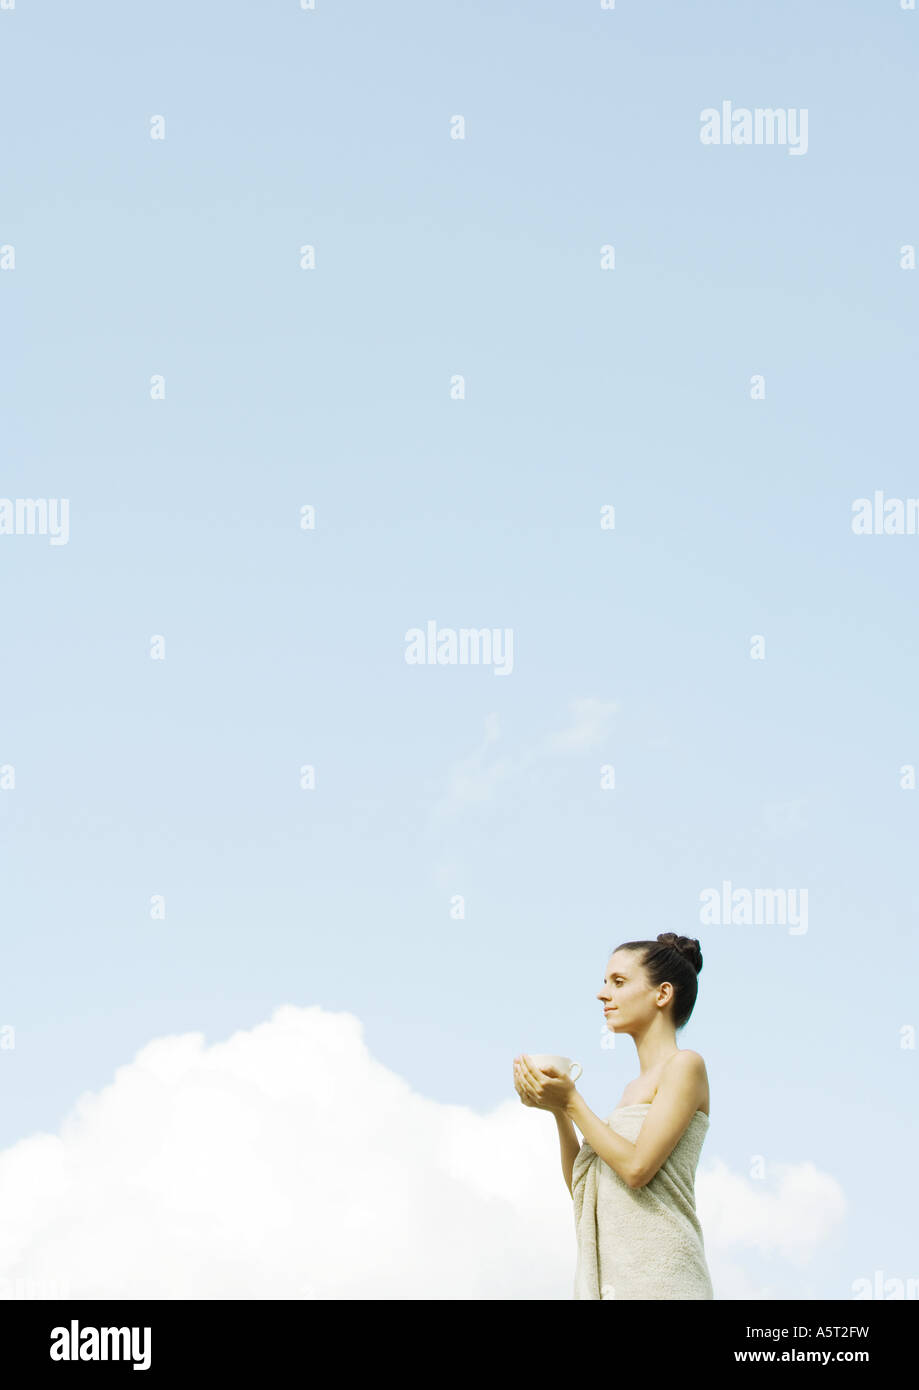 Woman standing wrapped in towel, holding bowl in hands, sky in background - Stock Image